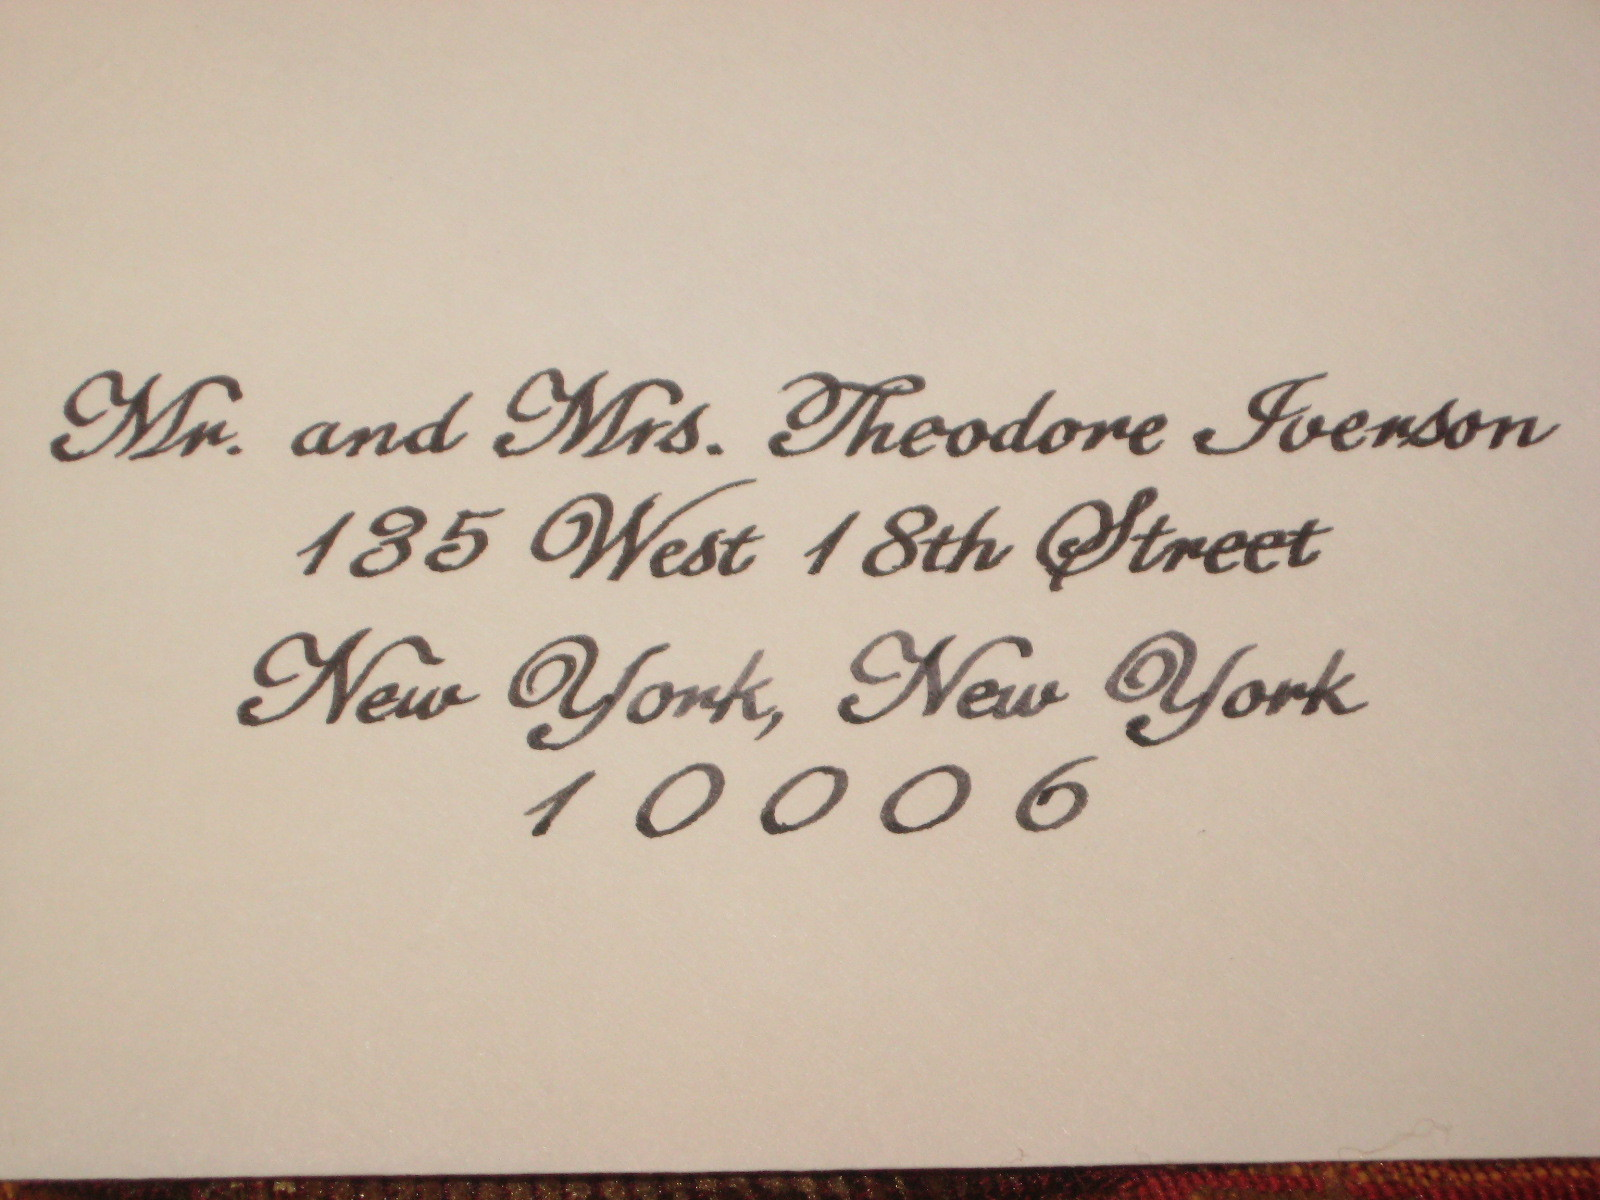 Calligraphy, llc, Envelope, Addressing, A fine line, Handwritten